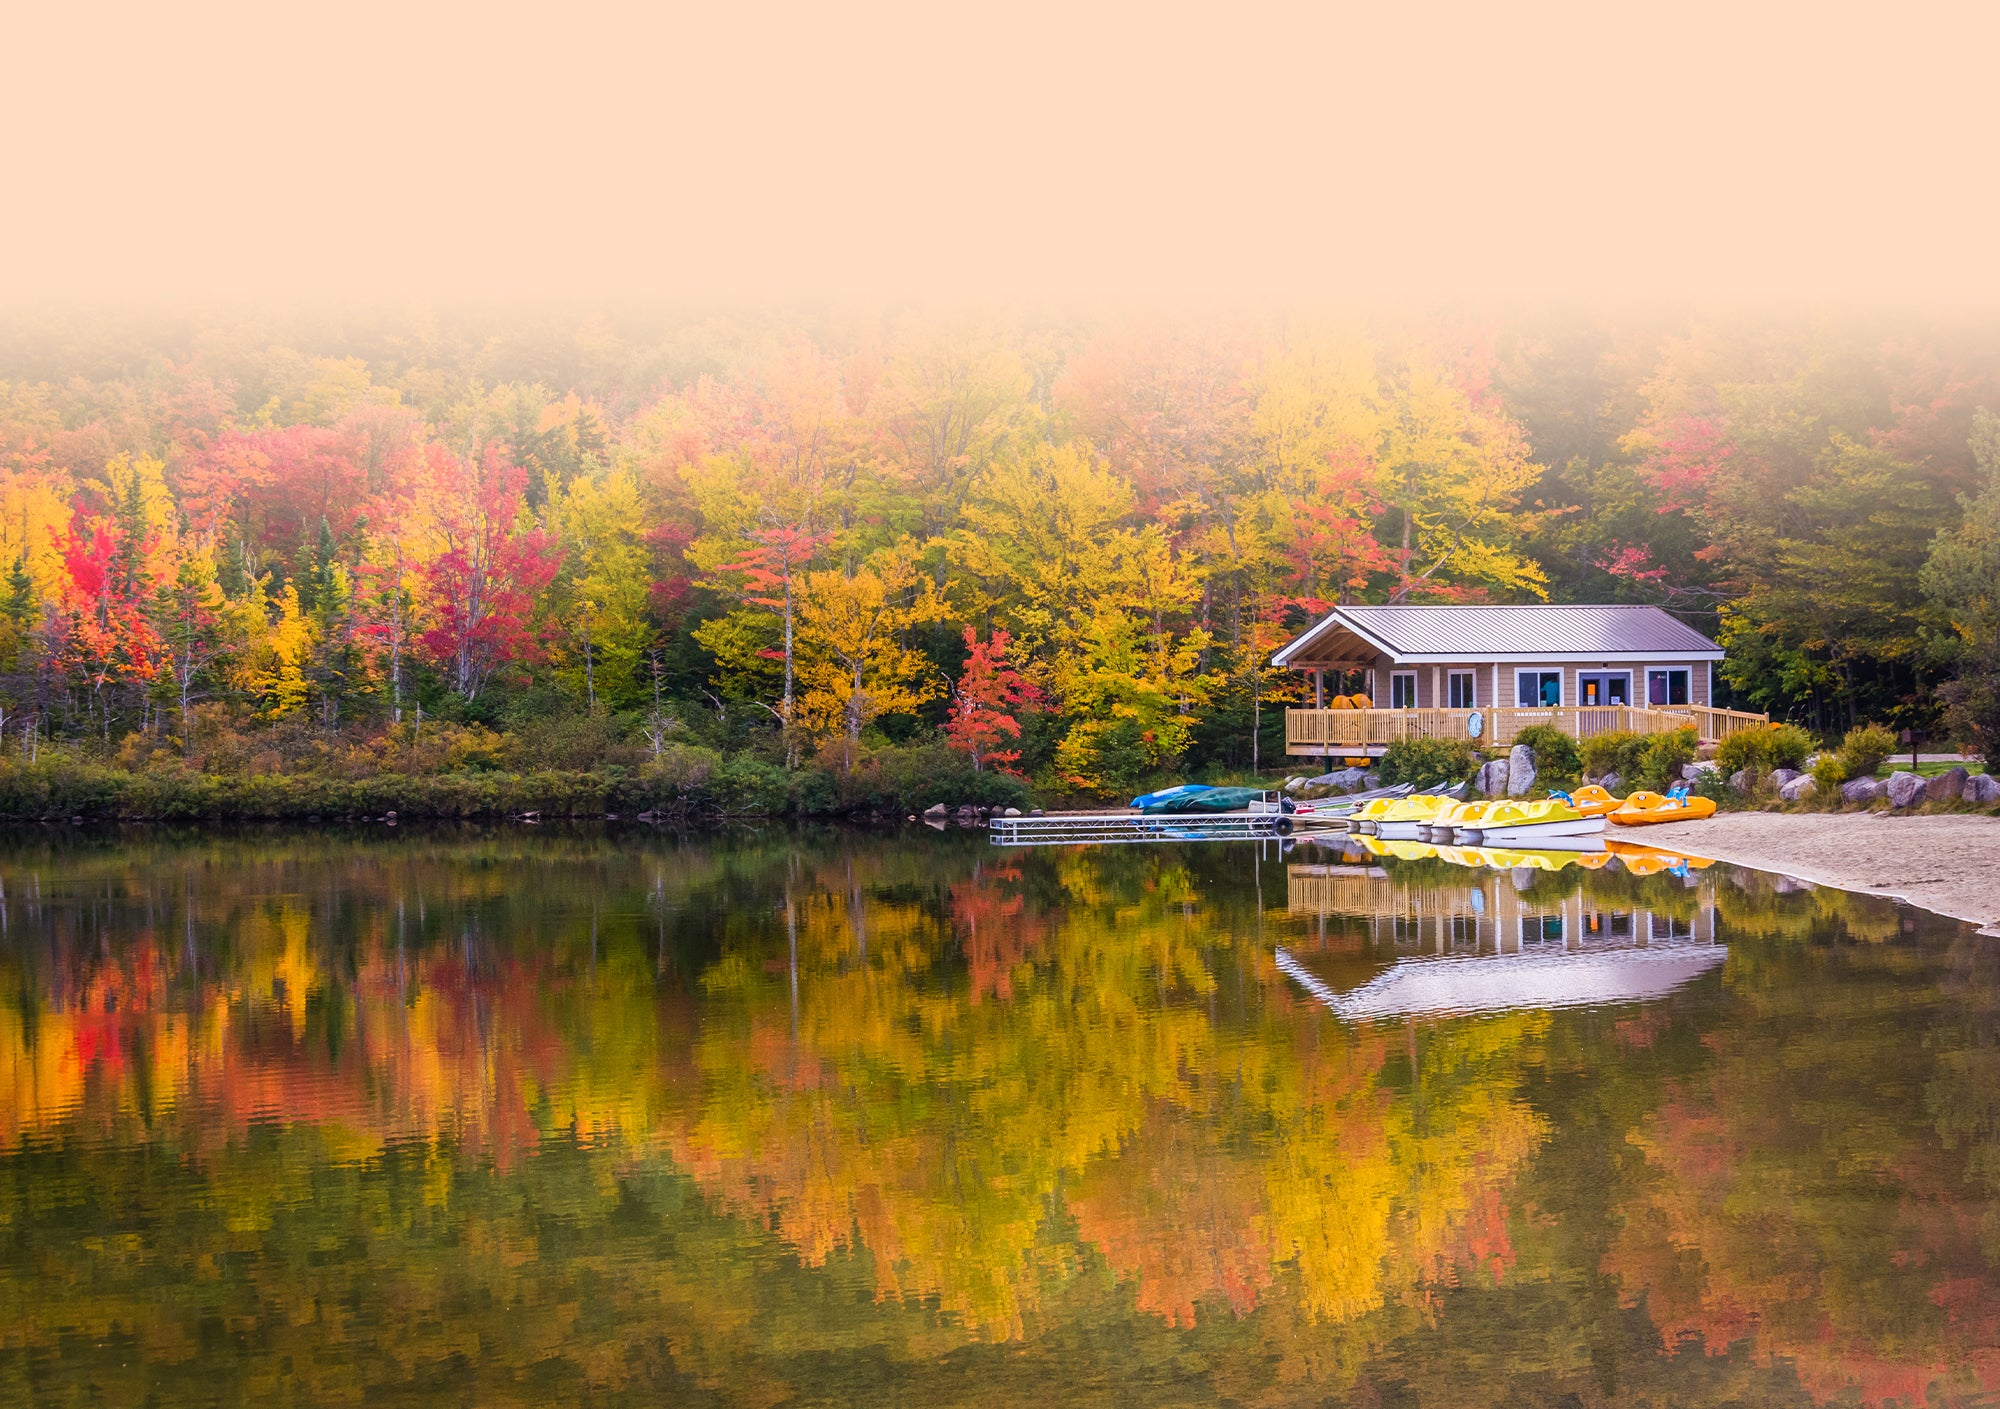 Lake house during the fall